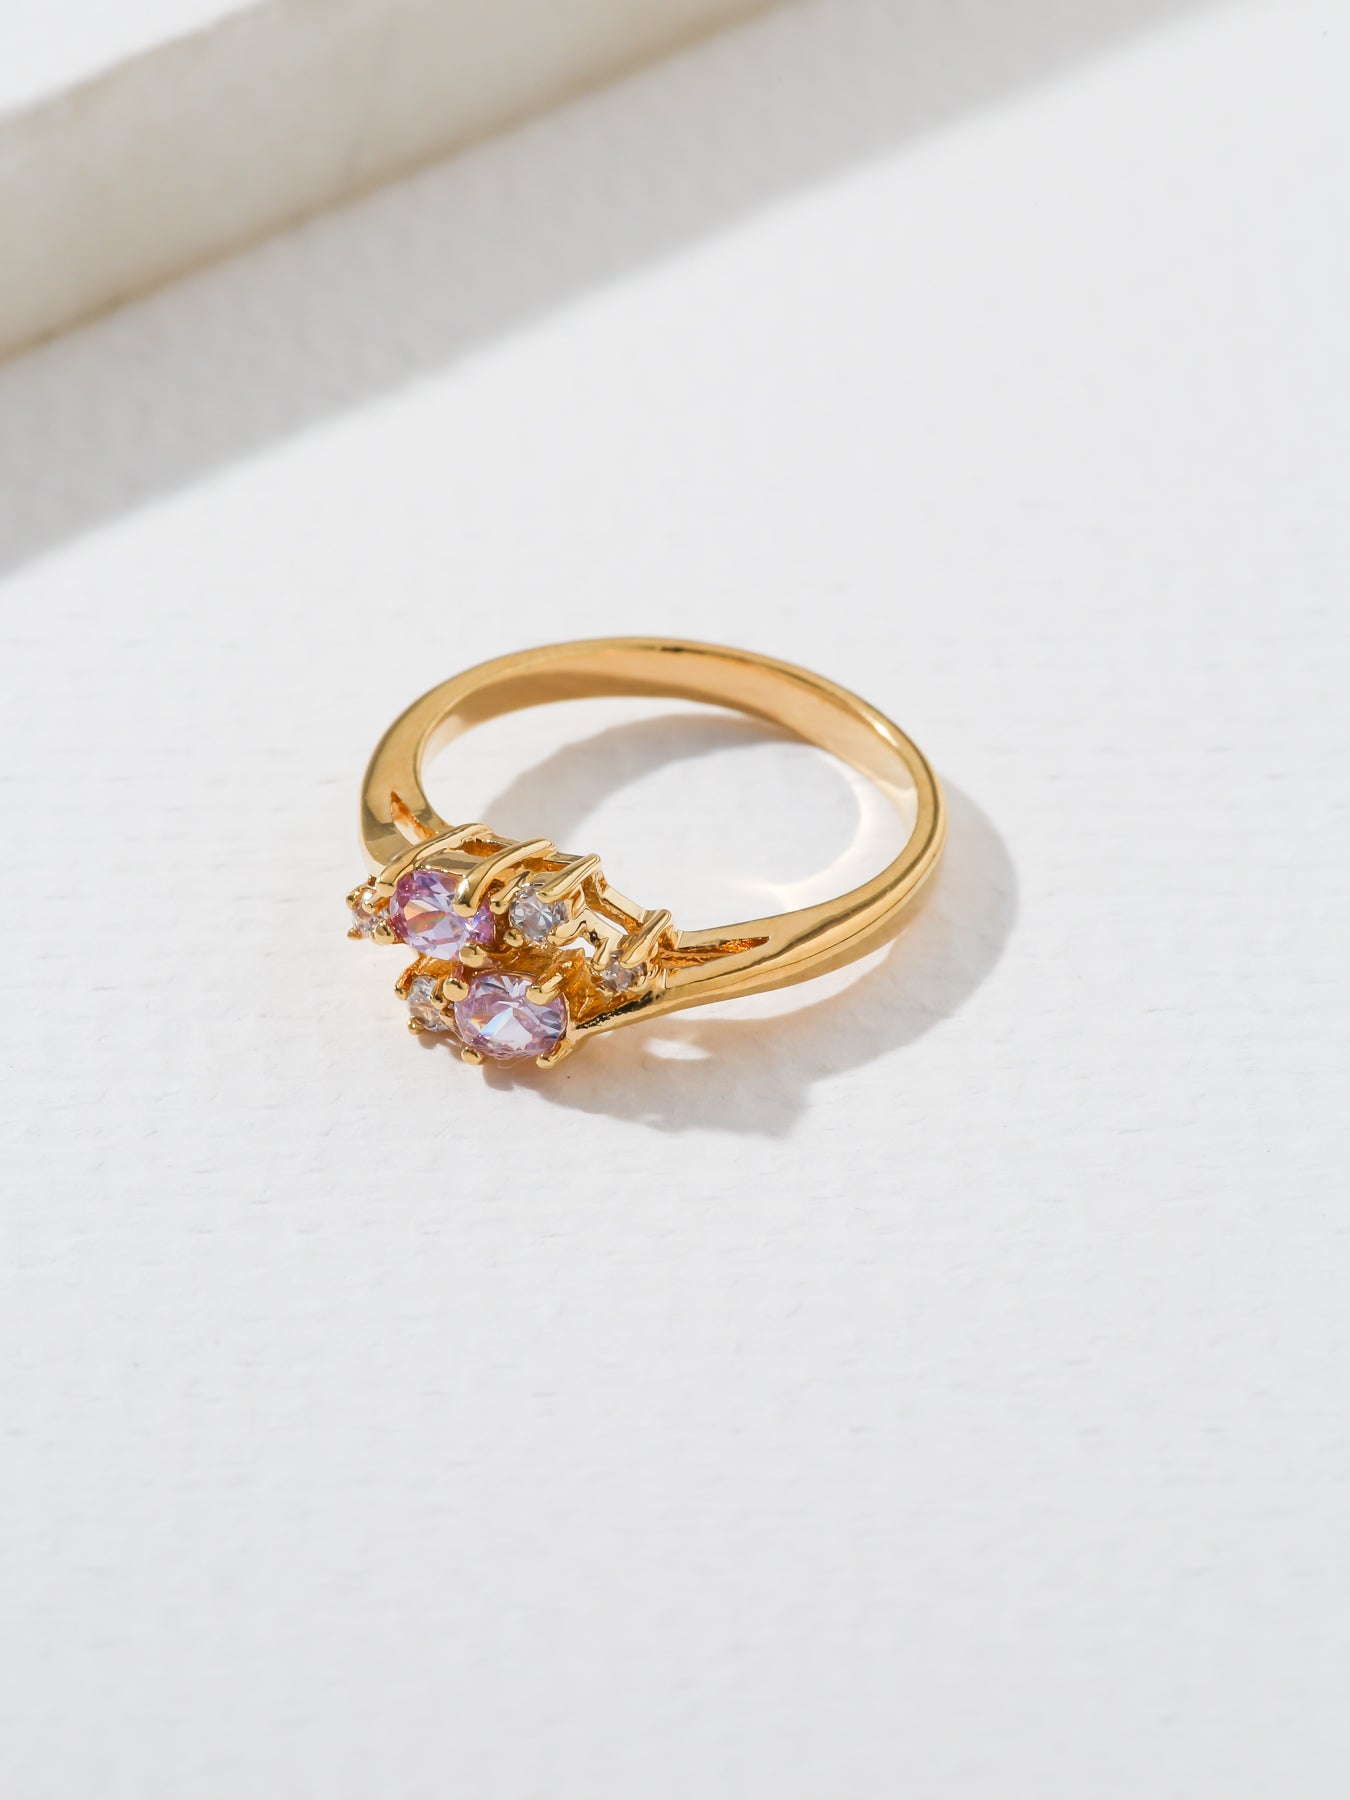 Rings The Triumph Birthstone Ring Pink Tourmaline Vanessa Mooney